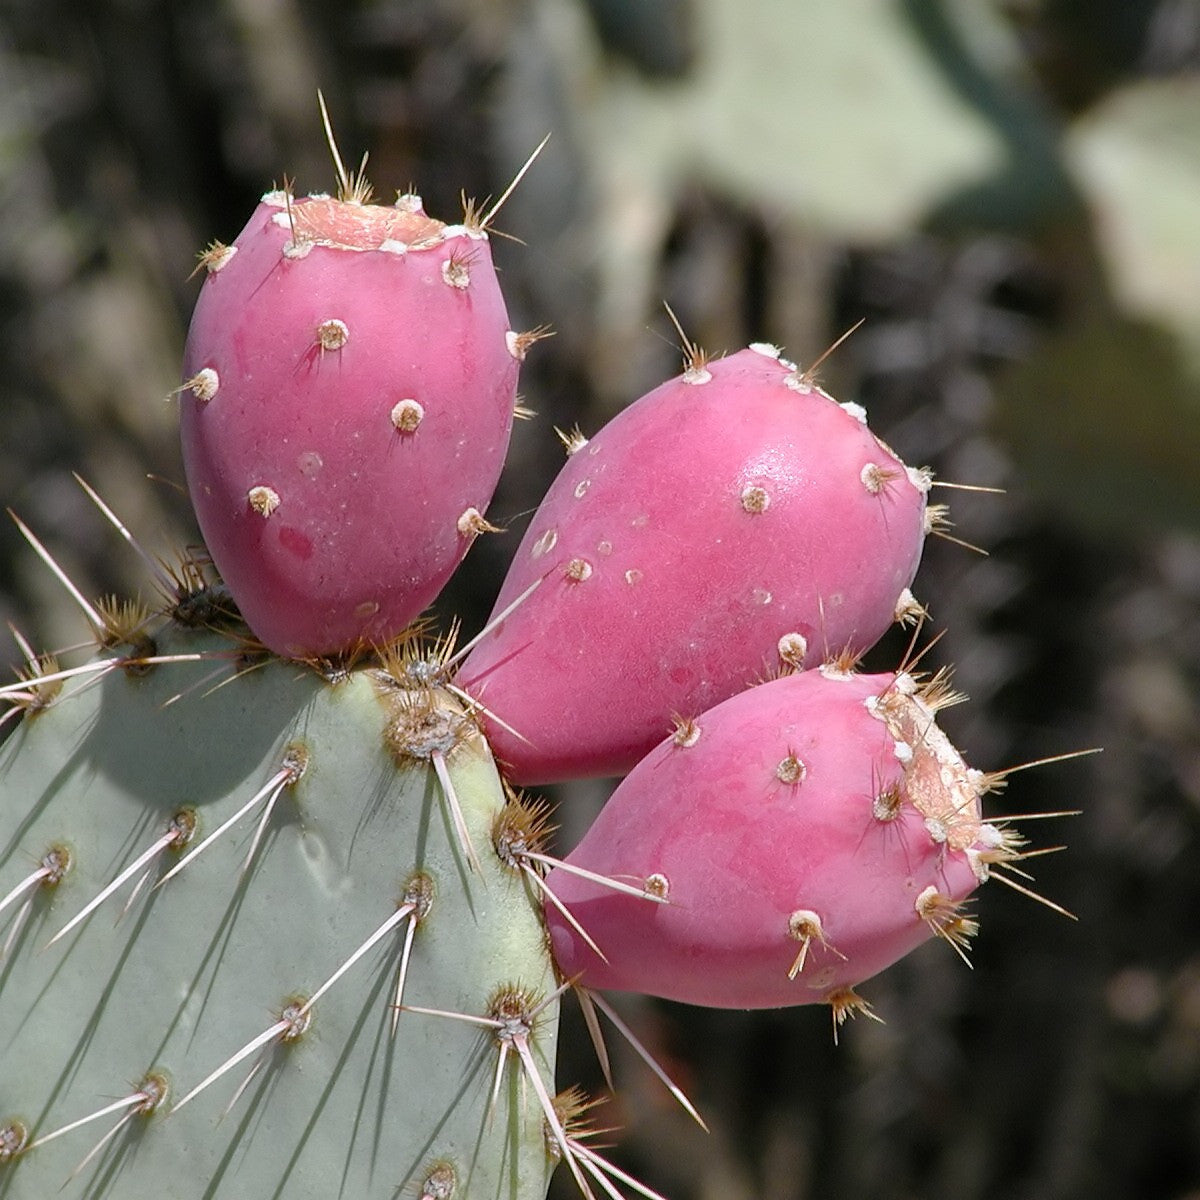 Images Prickly Pear With Fruit